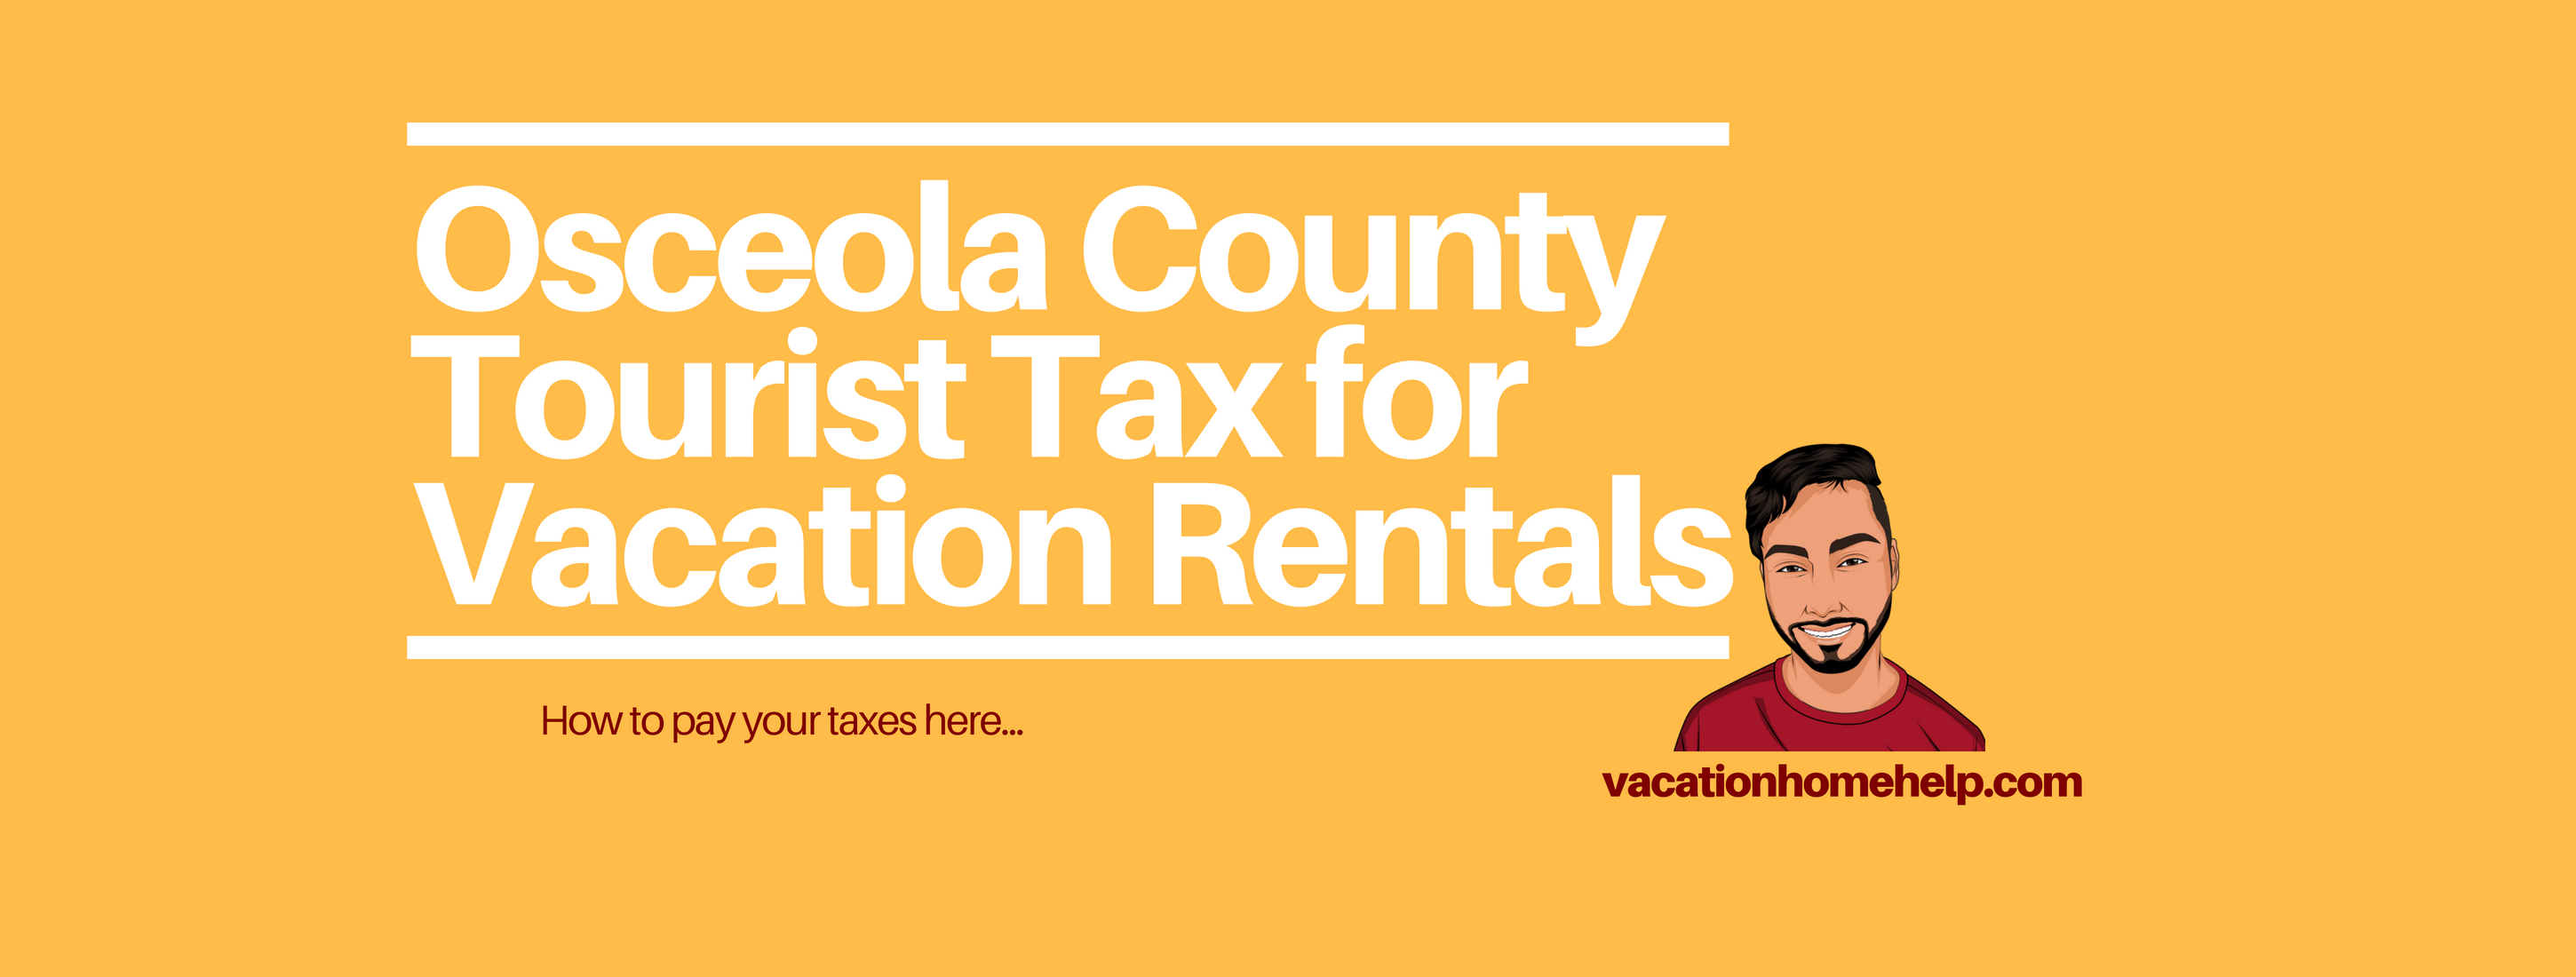 Osceola county tourist tax